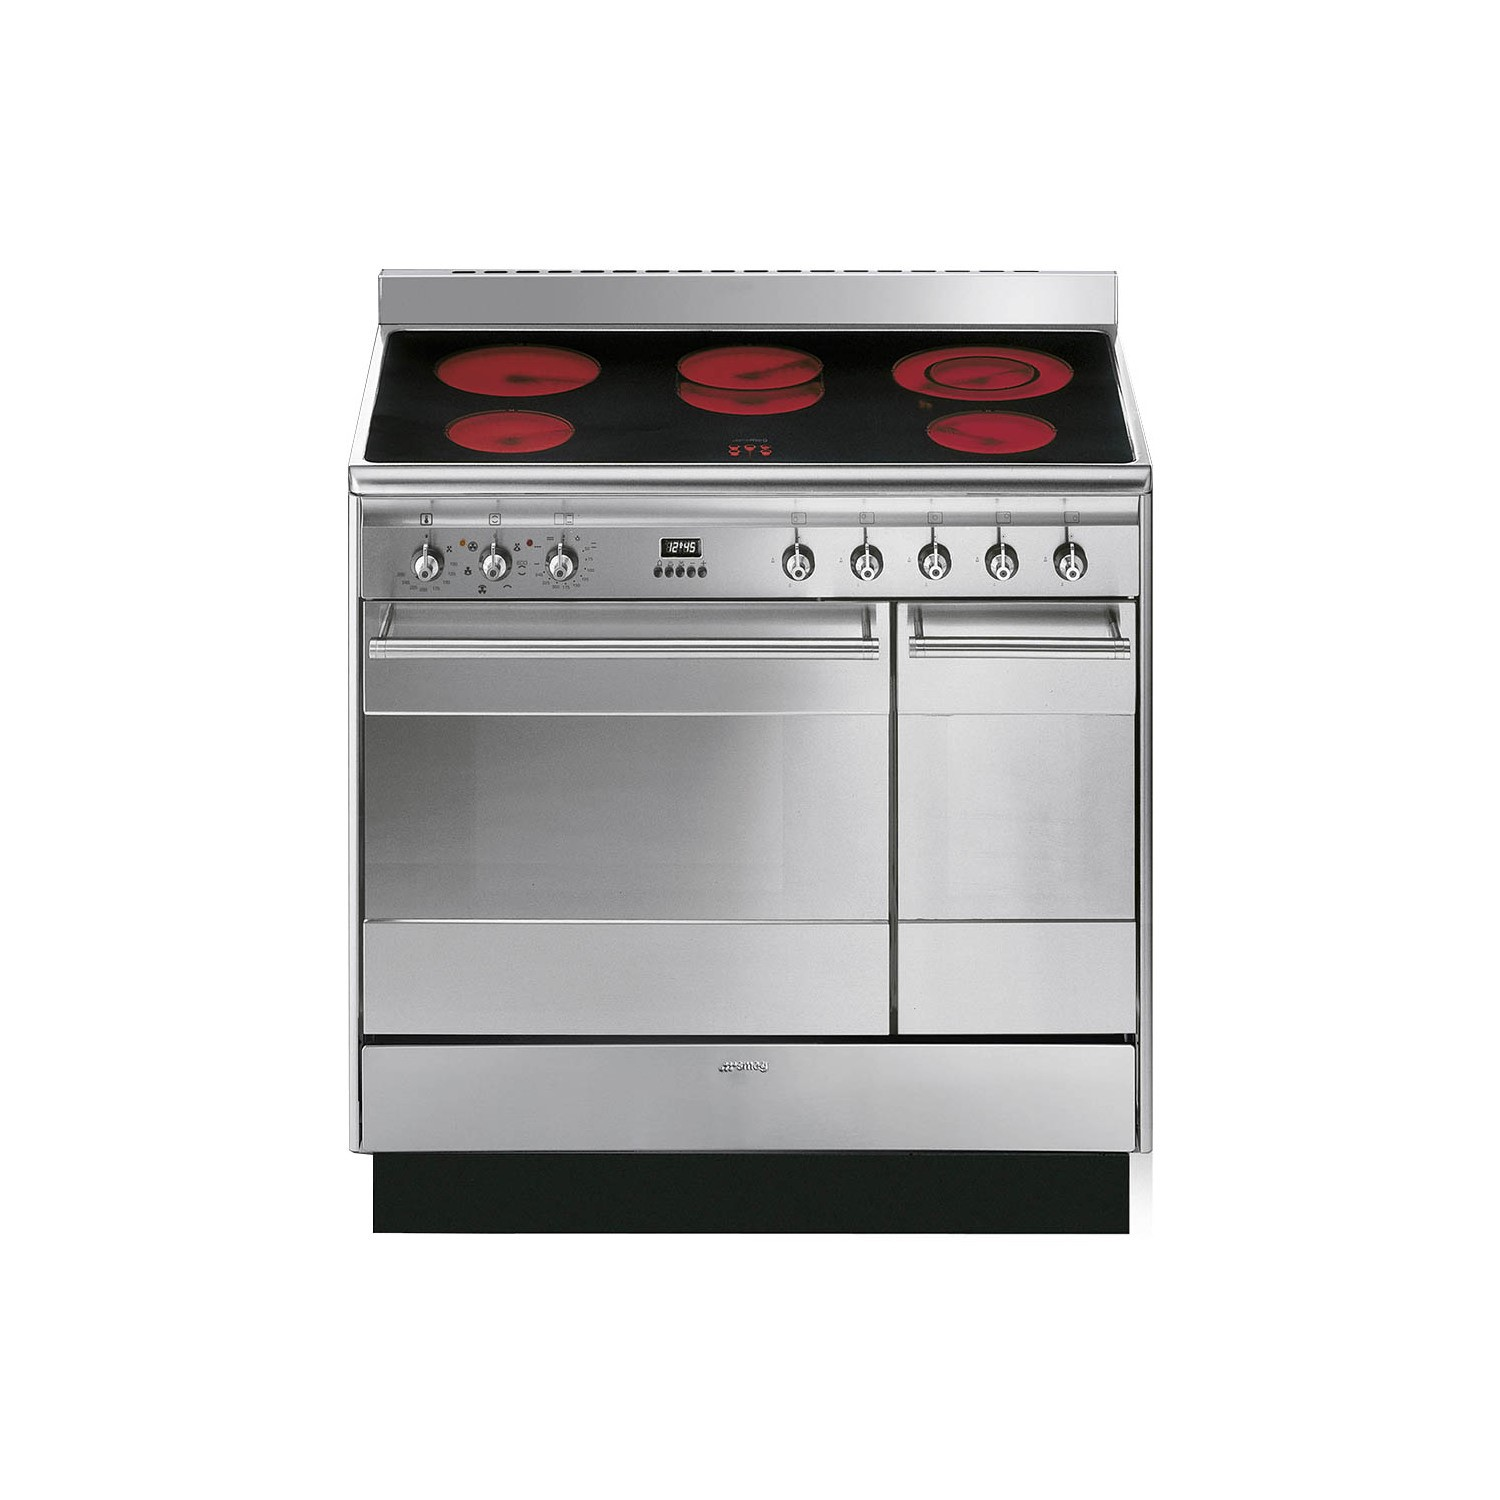 smeg suk92cmx9 concert double oven 90cm electric range cooker with ceramic hob stainless steel